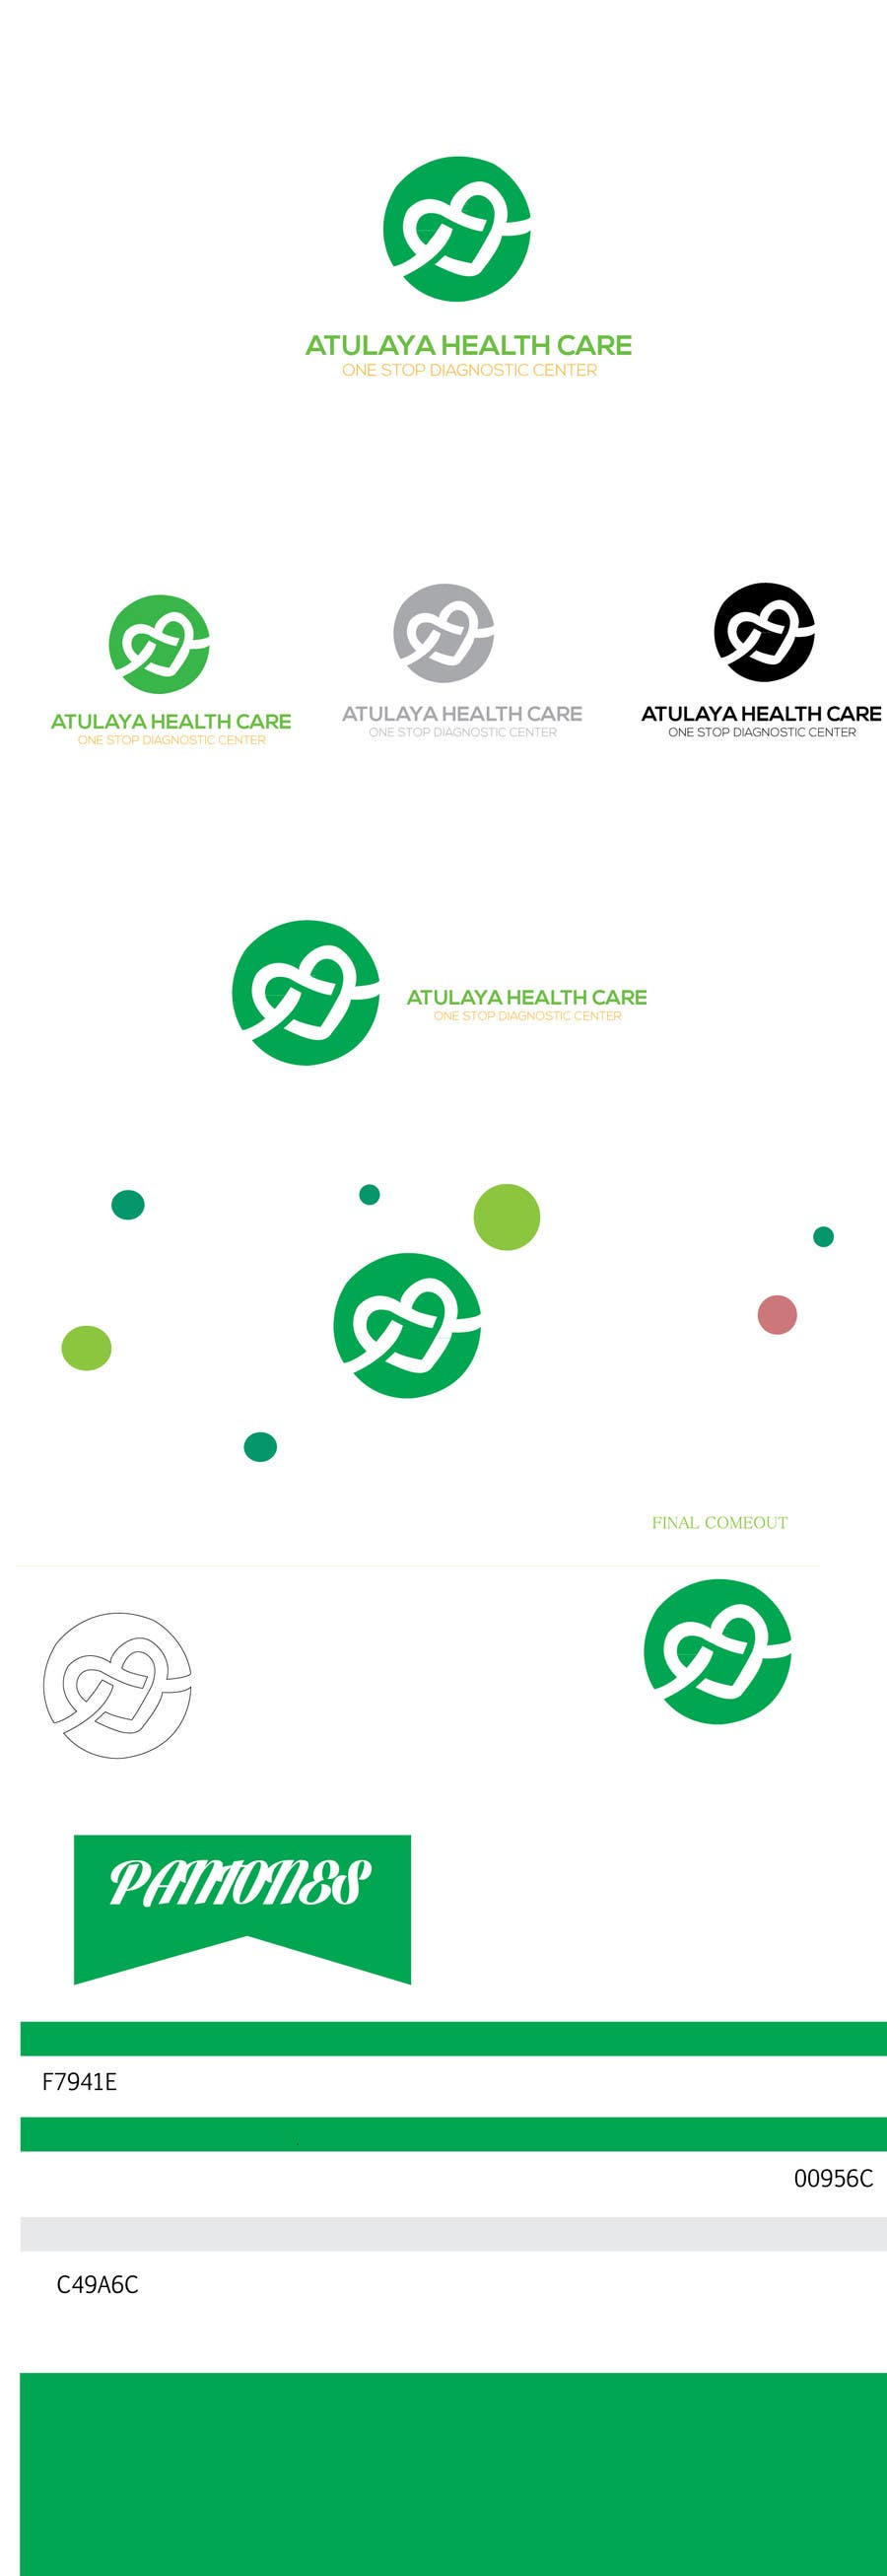 #81 for Design a Logo/Corporate Identity for a Healthcare Company by QubixDesigns